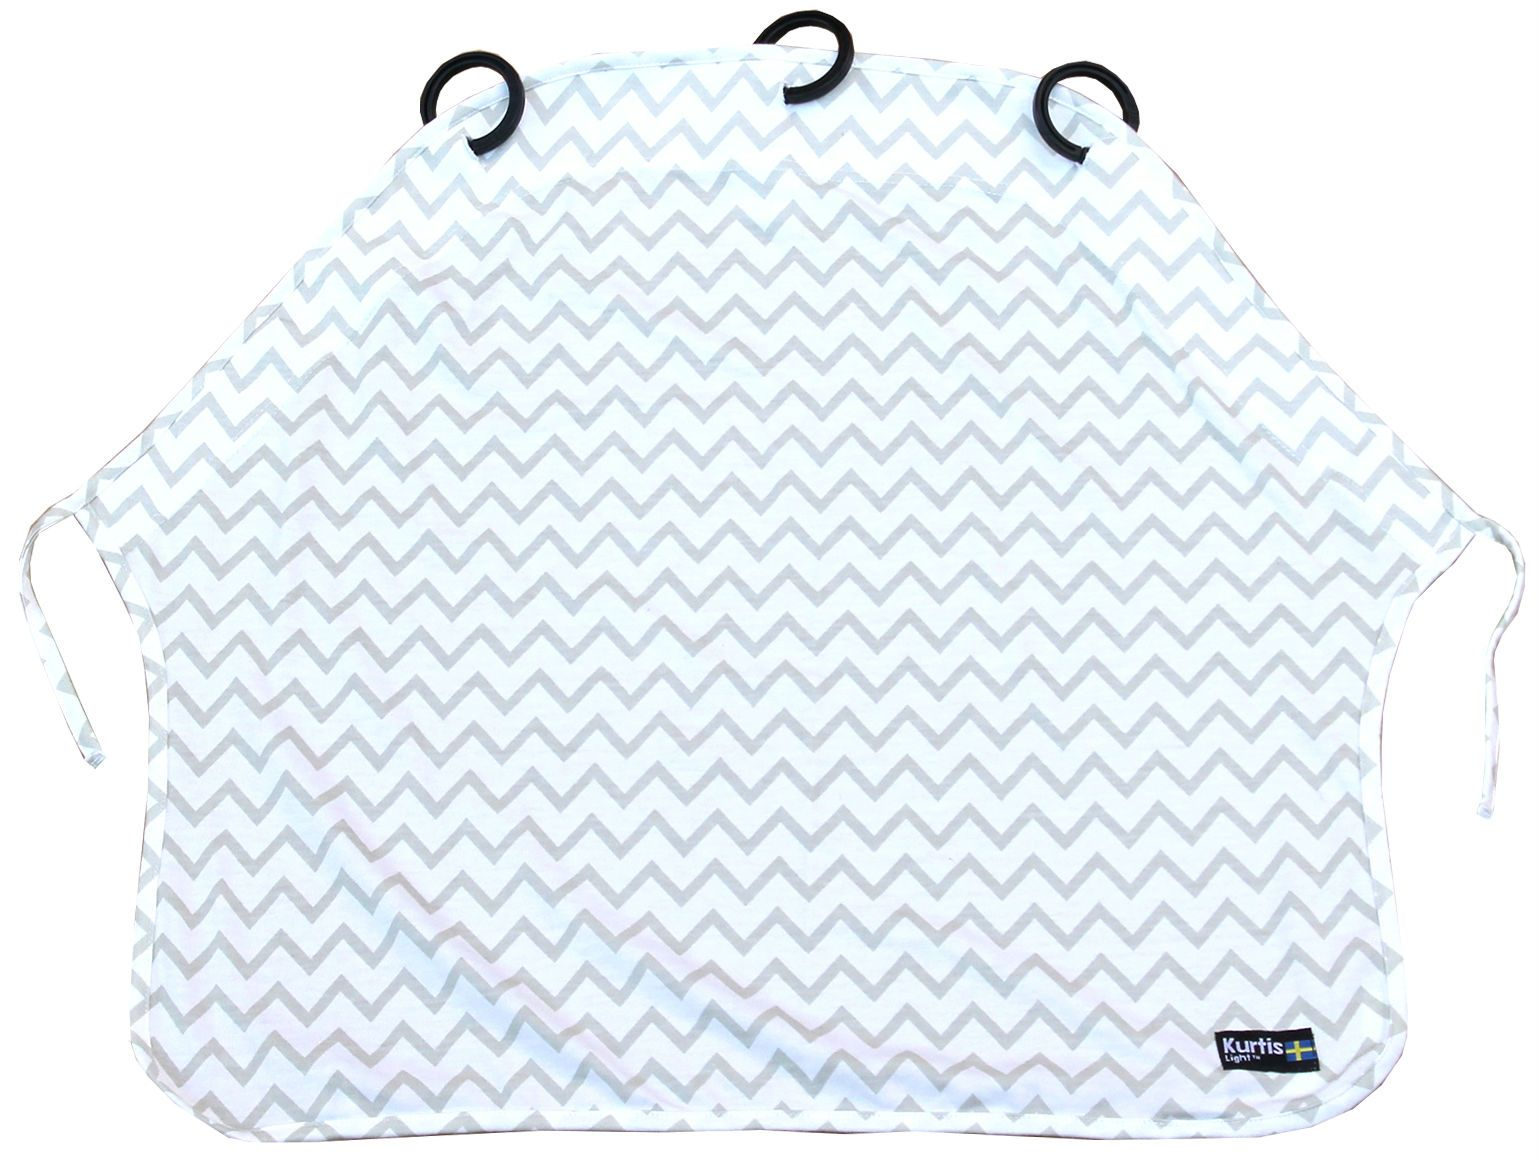 Image of Barnevognsgardin fra Kurtis - Baby Peace Light - Grey Zig-Zag (107243)